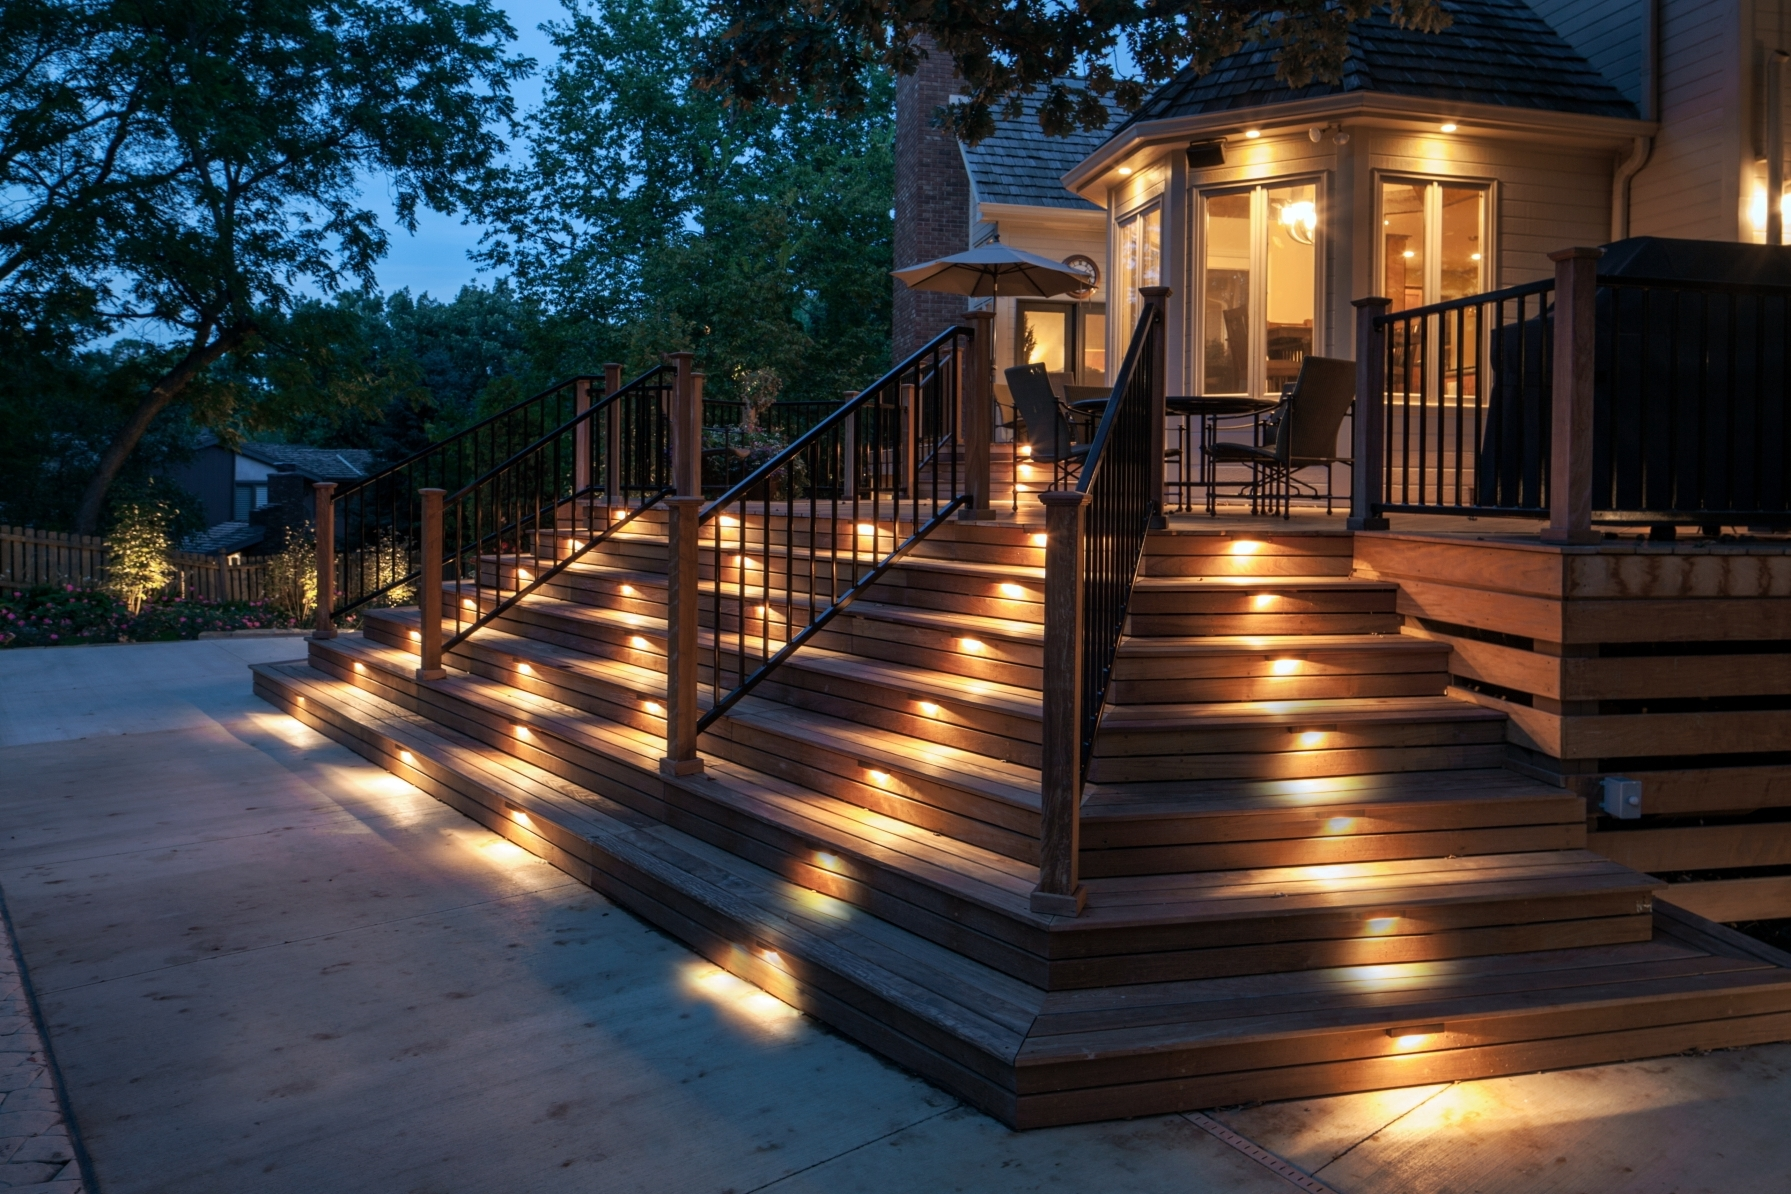 10 Great Outdoor Light Options For Your Home In Well Known Outdoor Driveway Lanterns (View 1 of 20)